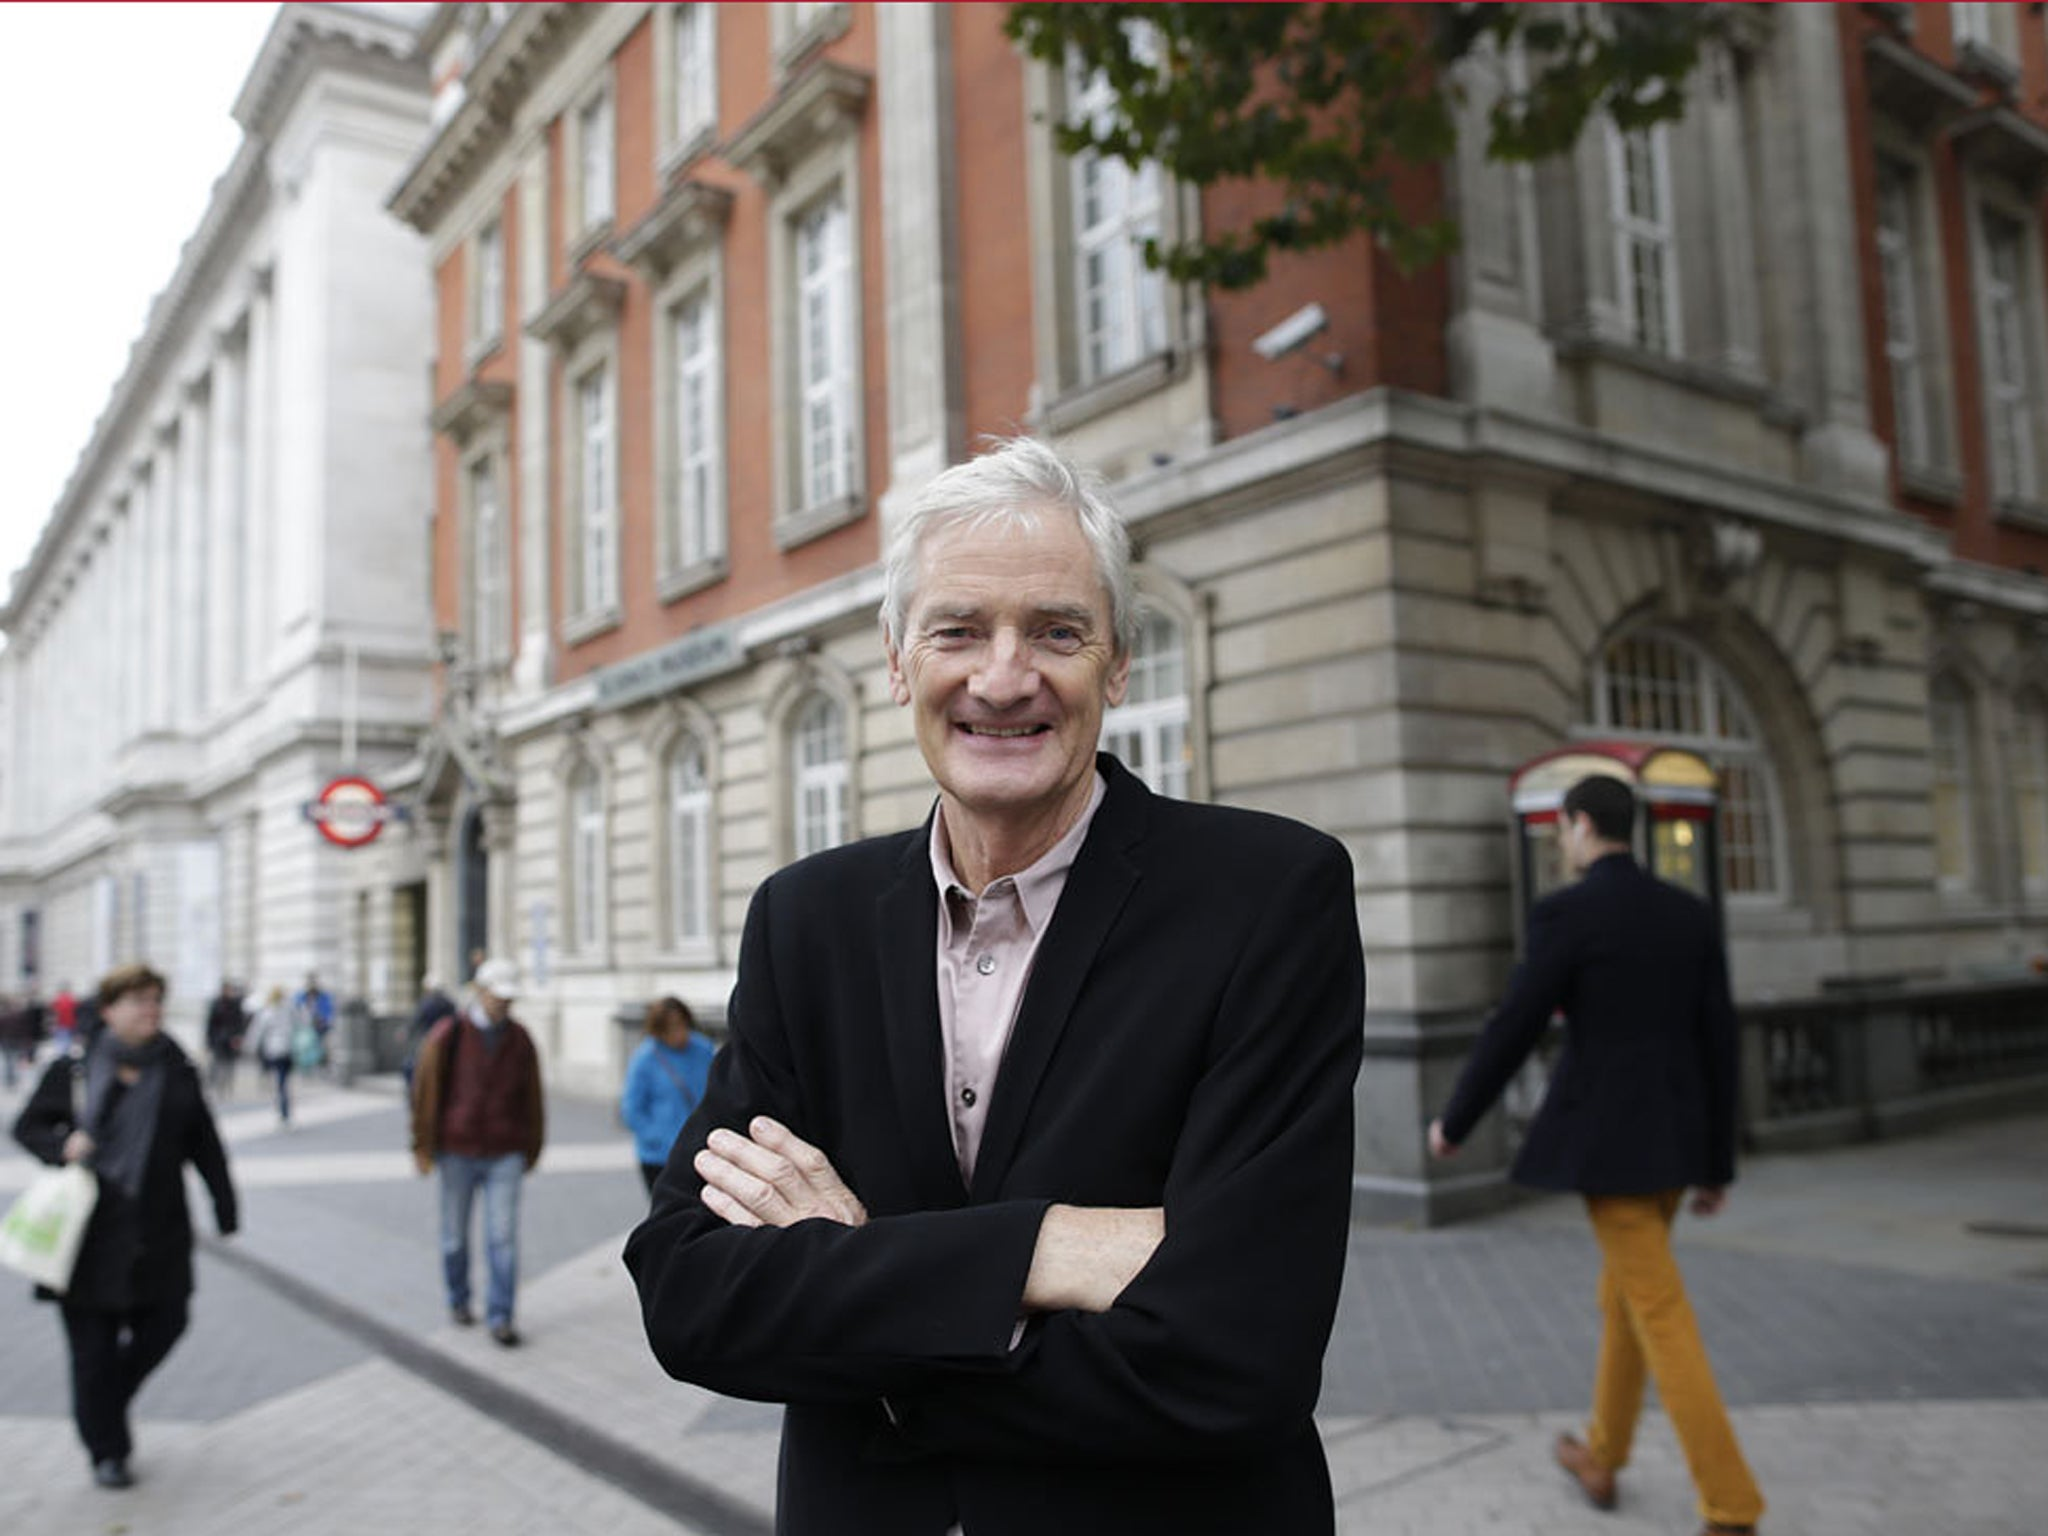 Bosch sues Dyson over cheating allegations | The Independentindependent_brand_ident_LOGOUntitled